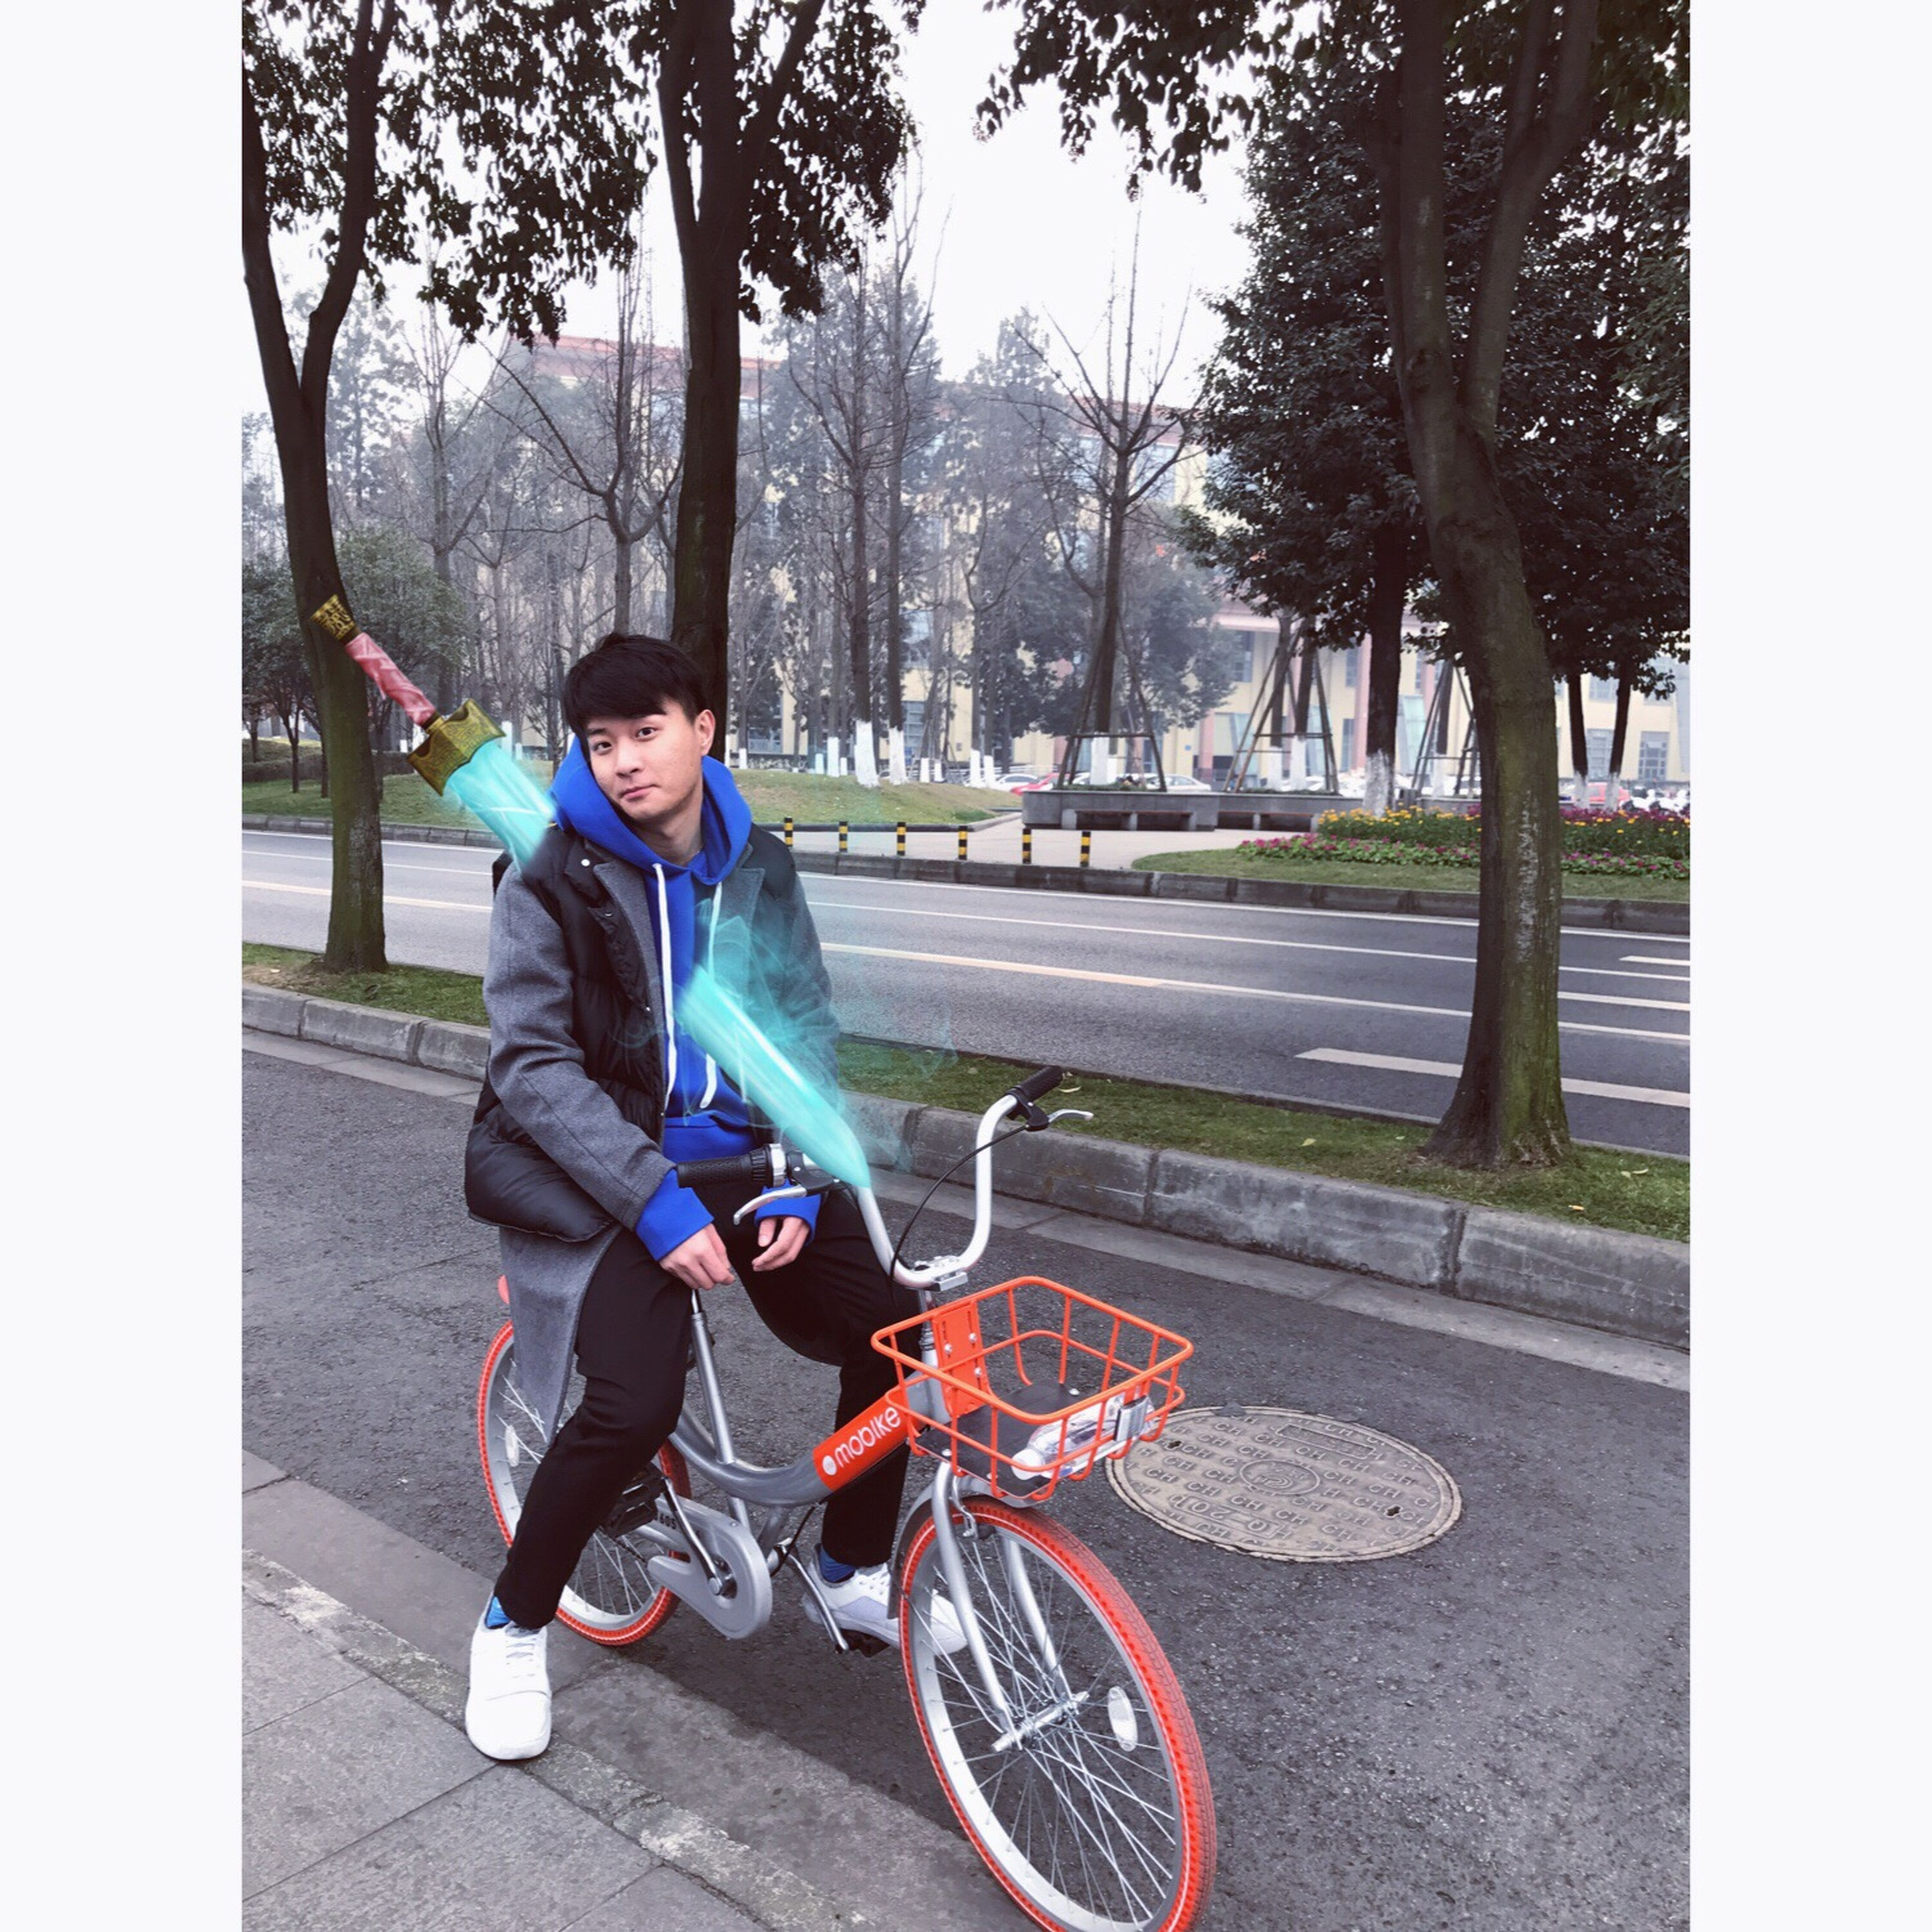 full length, tree, leisure activity, sitting, riding, one person, lifestyles, only men, outdoors, one man only, cycling, day, sports clothing, headwear, people, adults only, young adult, adult